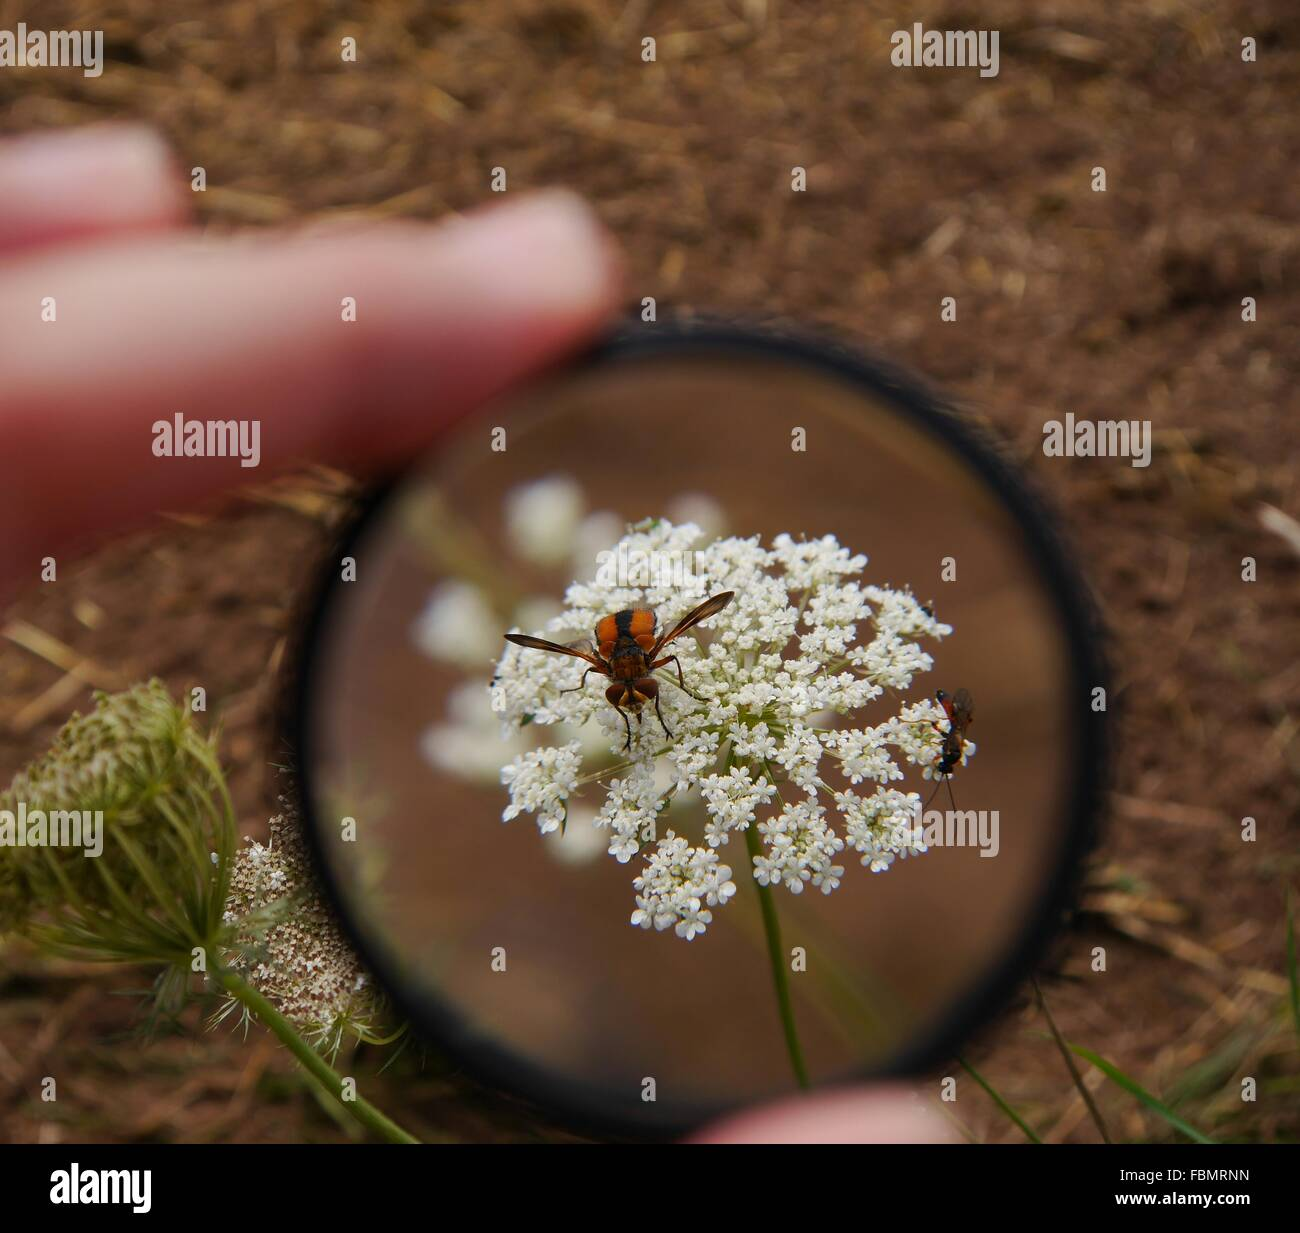 Bees On Flowers Seen Through Magnifying Glass - Stock Image